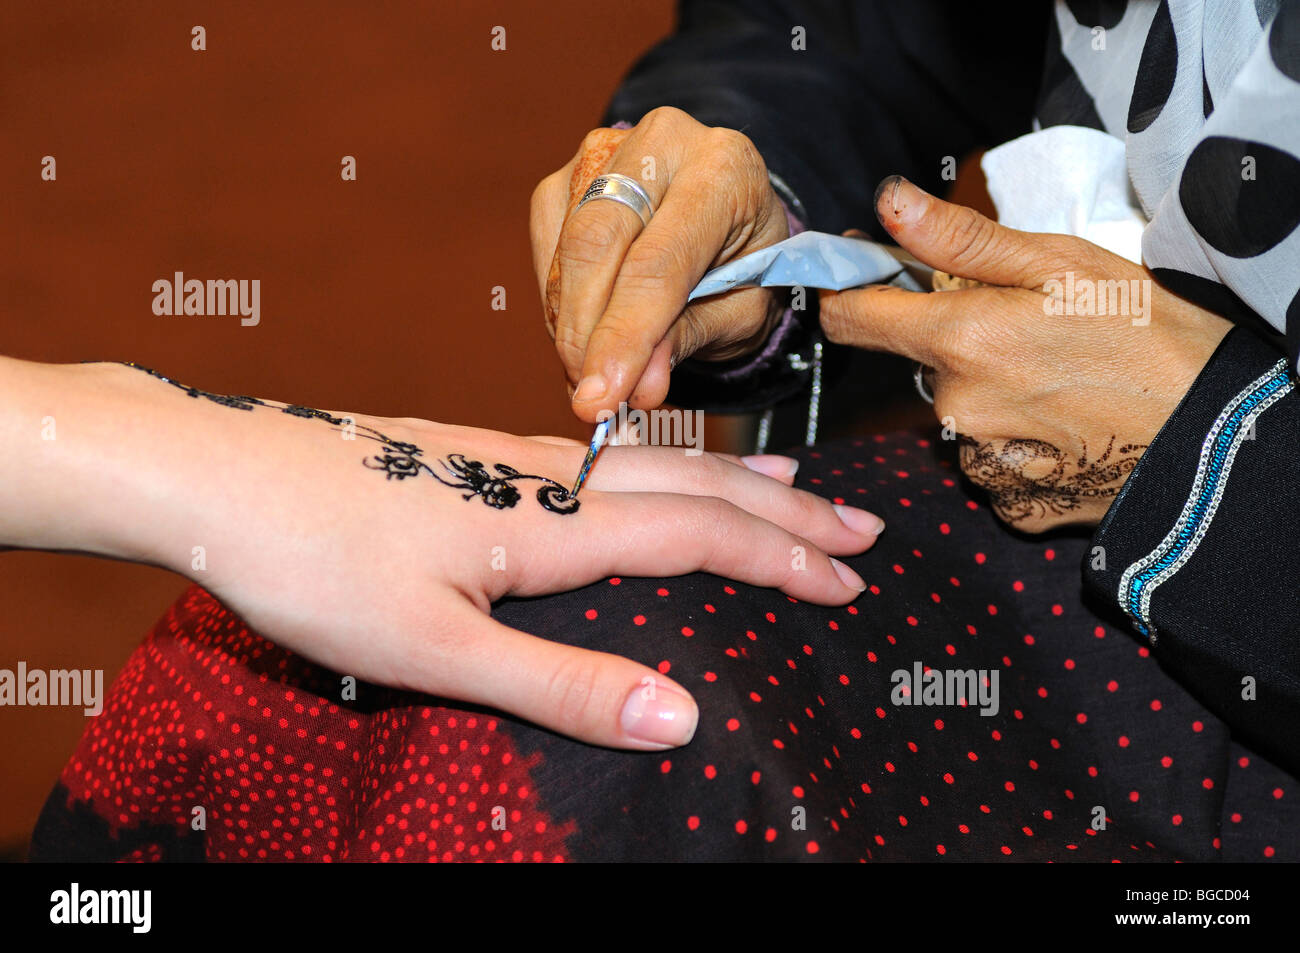 Arab Woman Applies Henna Paste On A Hand To Draw A Henna Tattoo